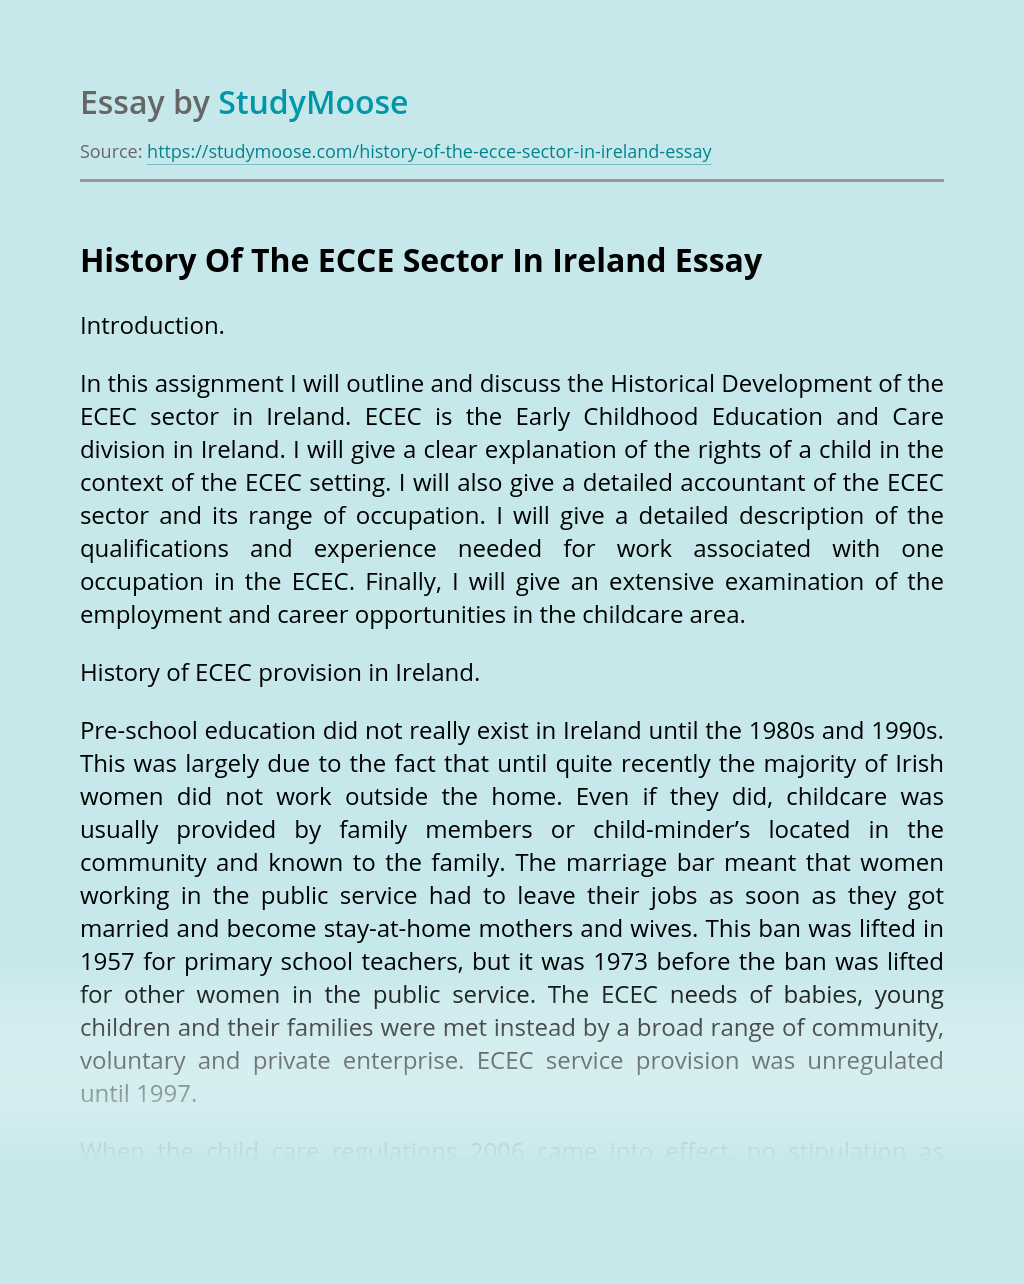 History Of The ECCE Sector In Ireland